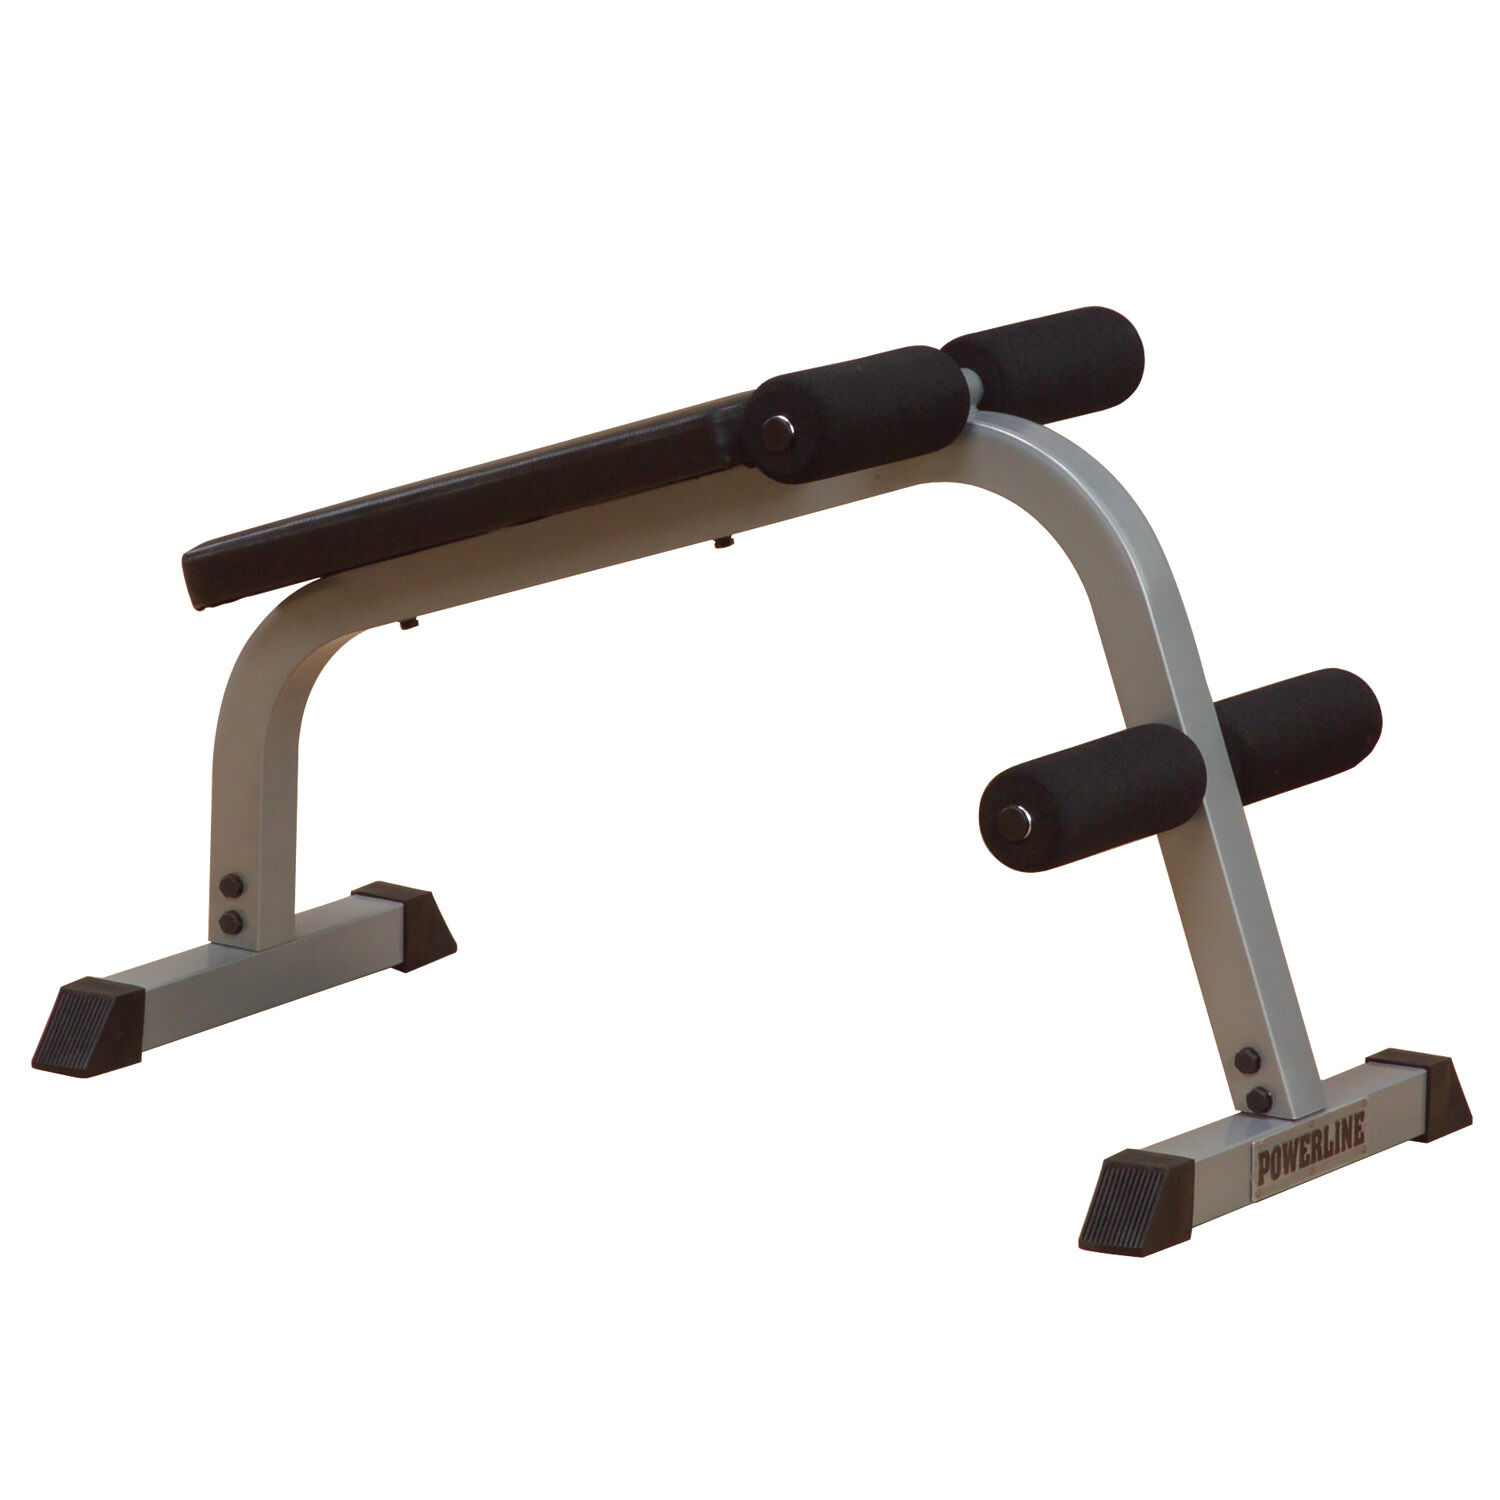 Powerline PAB139X Ab Board Core  Exercise Sit Up Home Fitness Equipment Bench  a lot of surprises